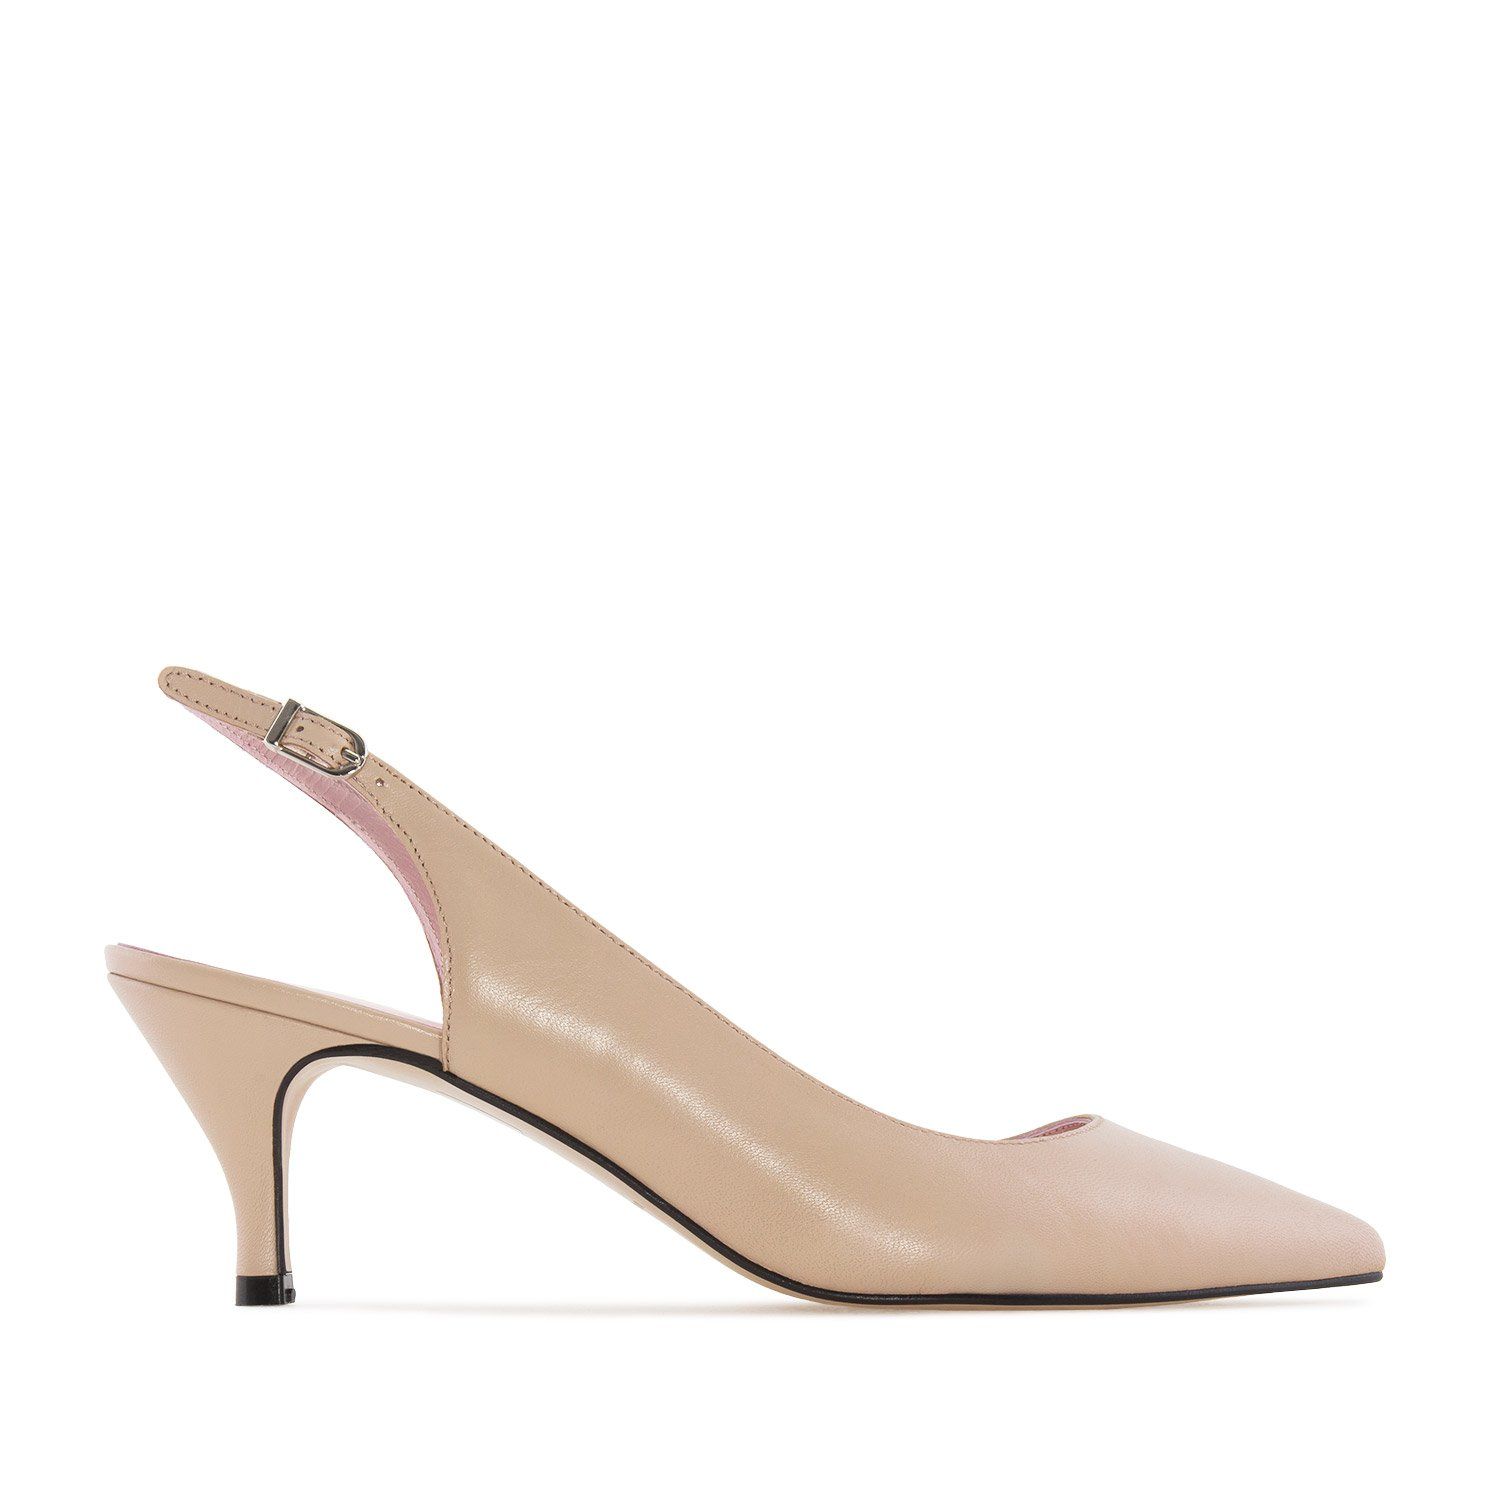 Andres Machado Fine Toe Slingback Shoes in Beige Leather, 43 M EU/11.5 B (M) US by Andres Machado (Image #2)